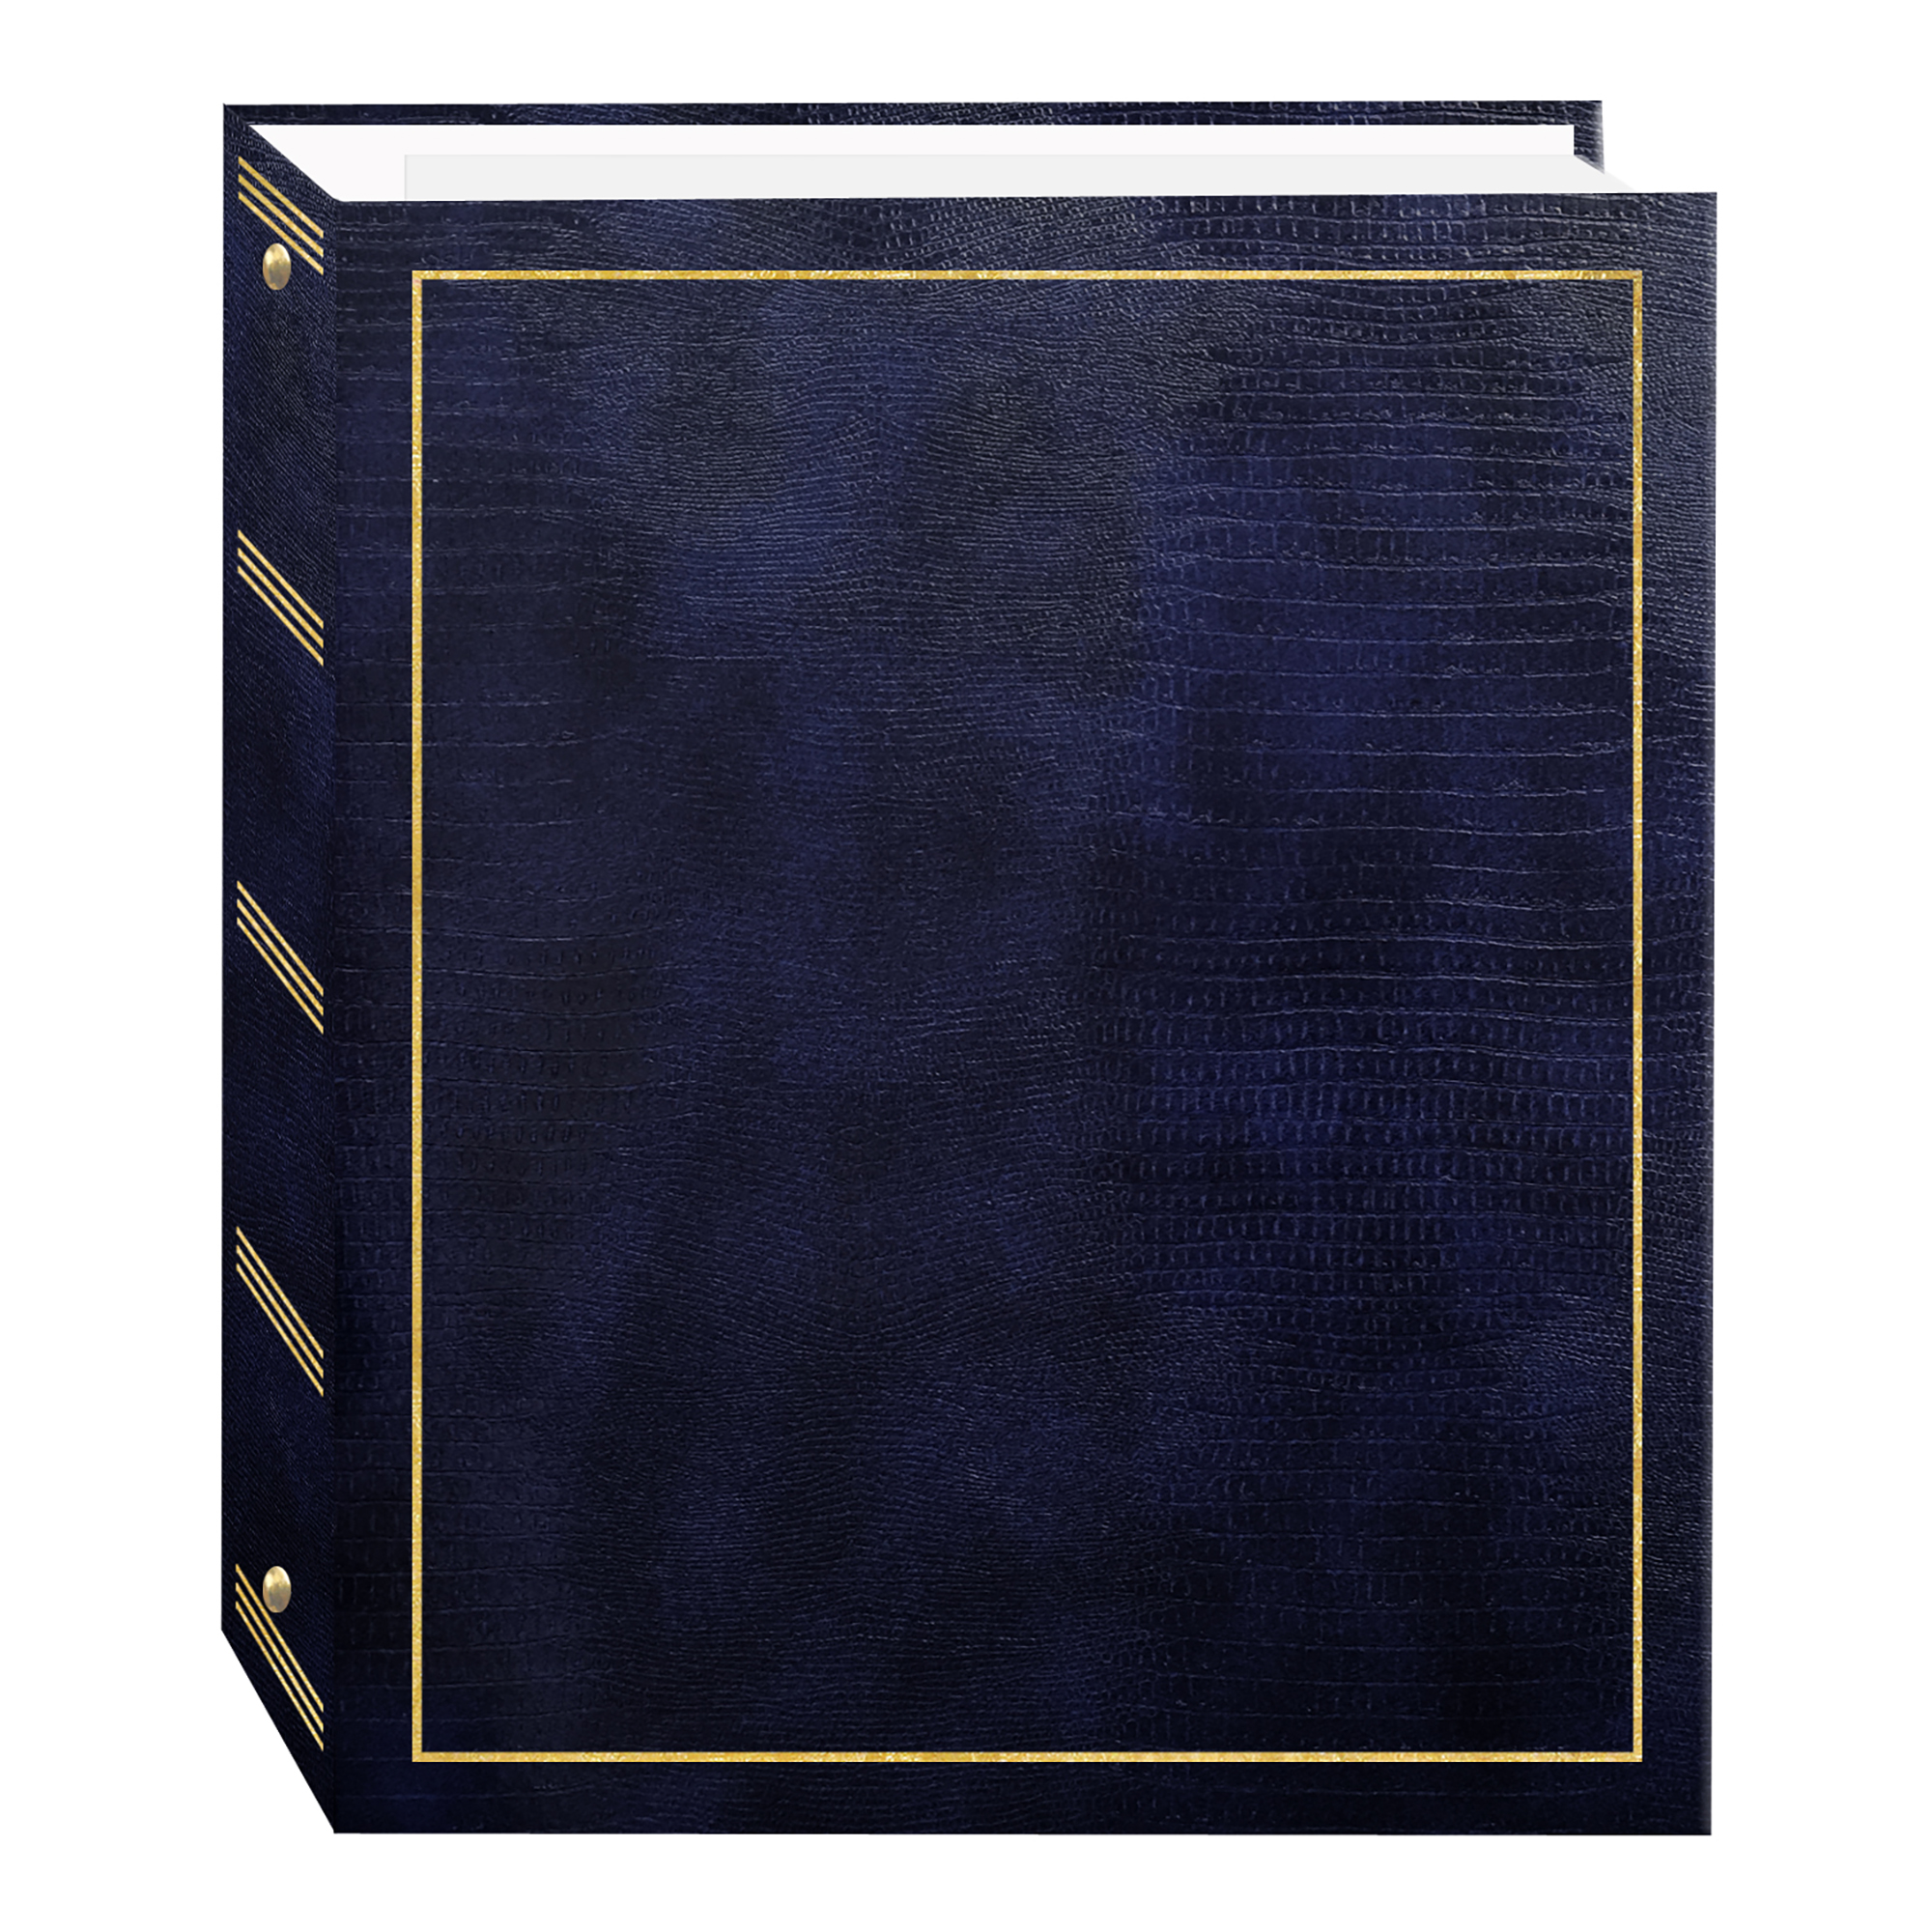 Photo Album 2.5x3.5 holds 24 wallets or gift cards Black Cover